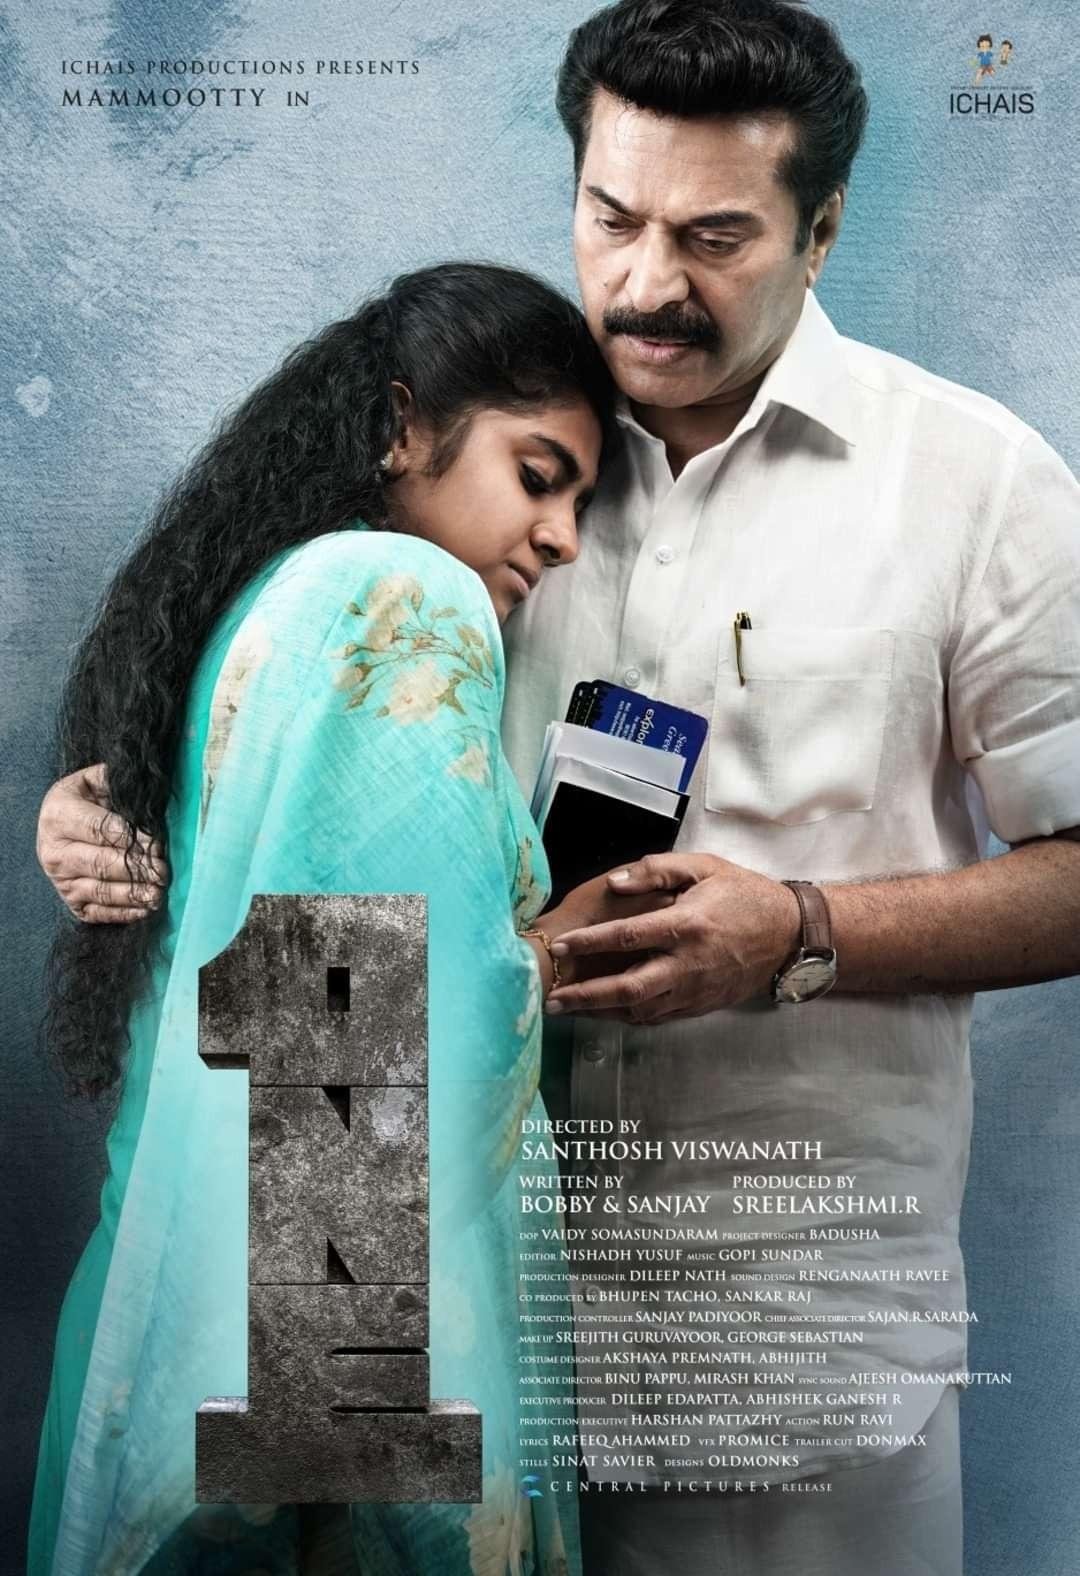 Mammootty's New Poster Is A Flicker On The Internet!